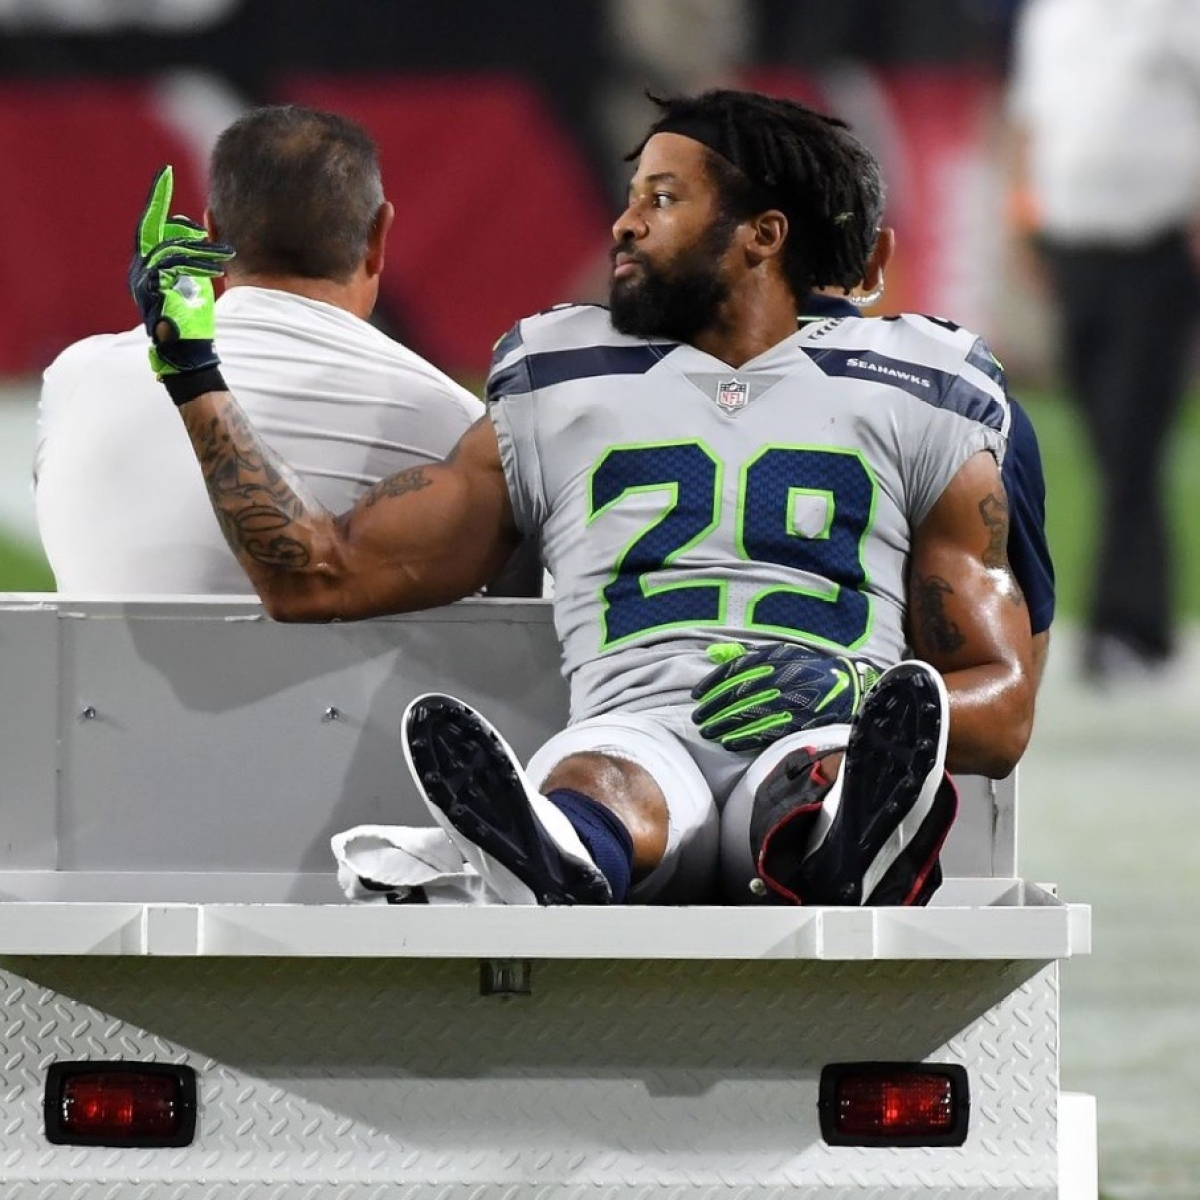 NFL star Earl Thomas found naked in bed with several women, held at gunpoint by wife